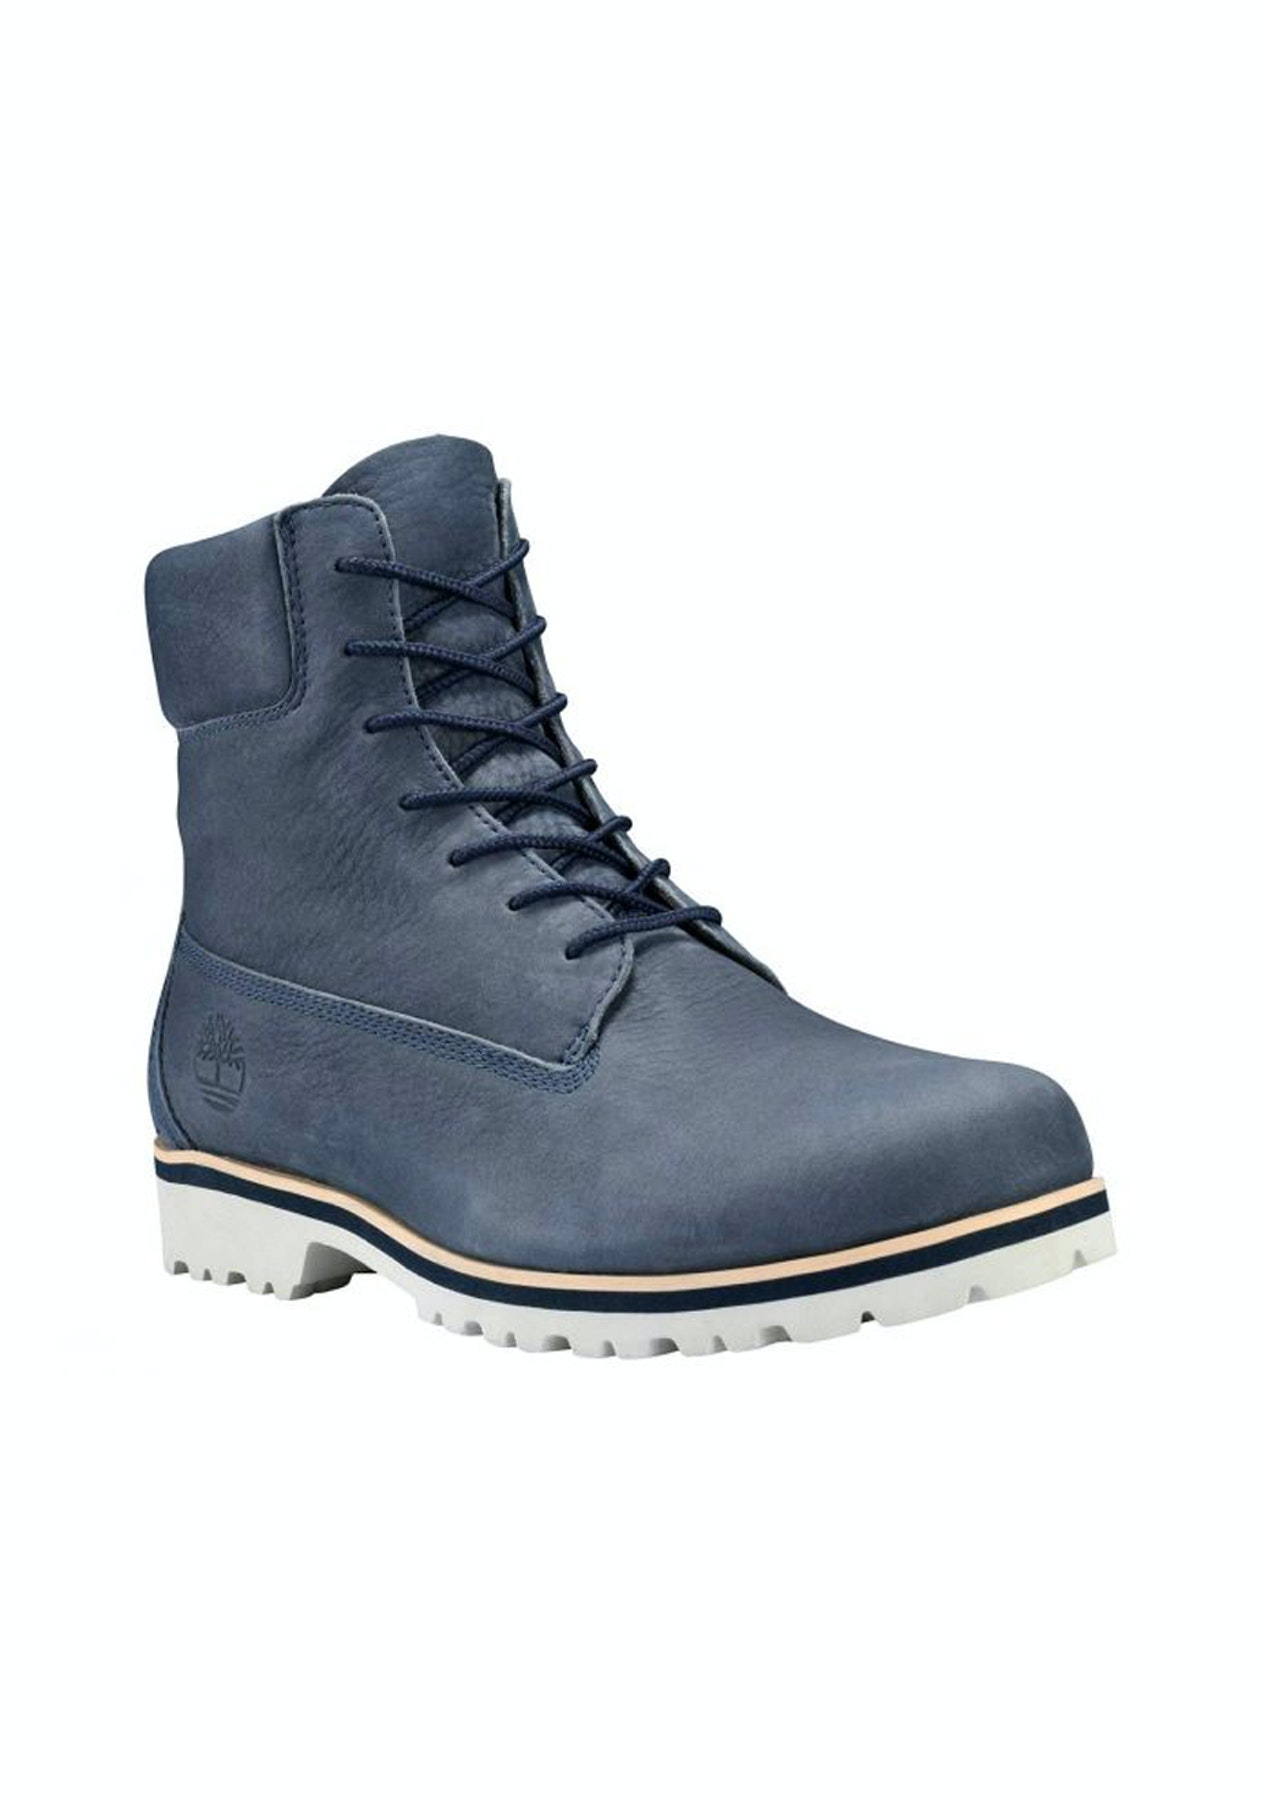 13e2471fcaf Timberland - A1PA1 Mens Chilmark 6-Inch Boot - Navy - Timberland - Onceit